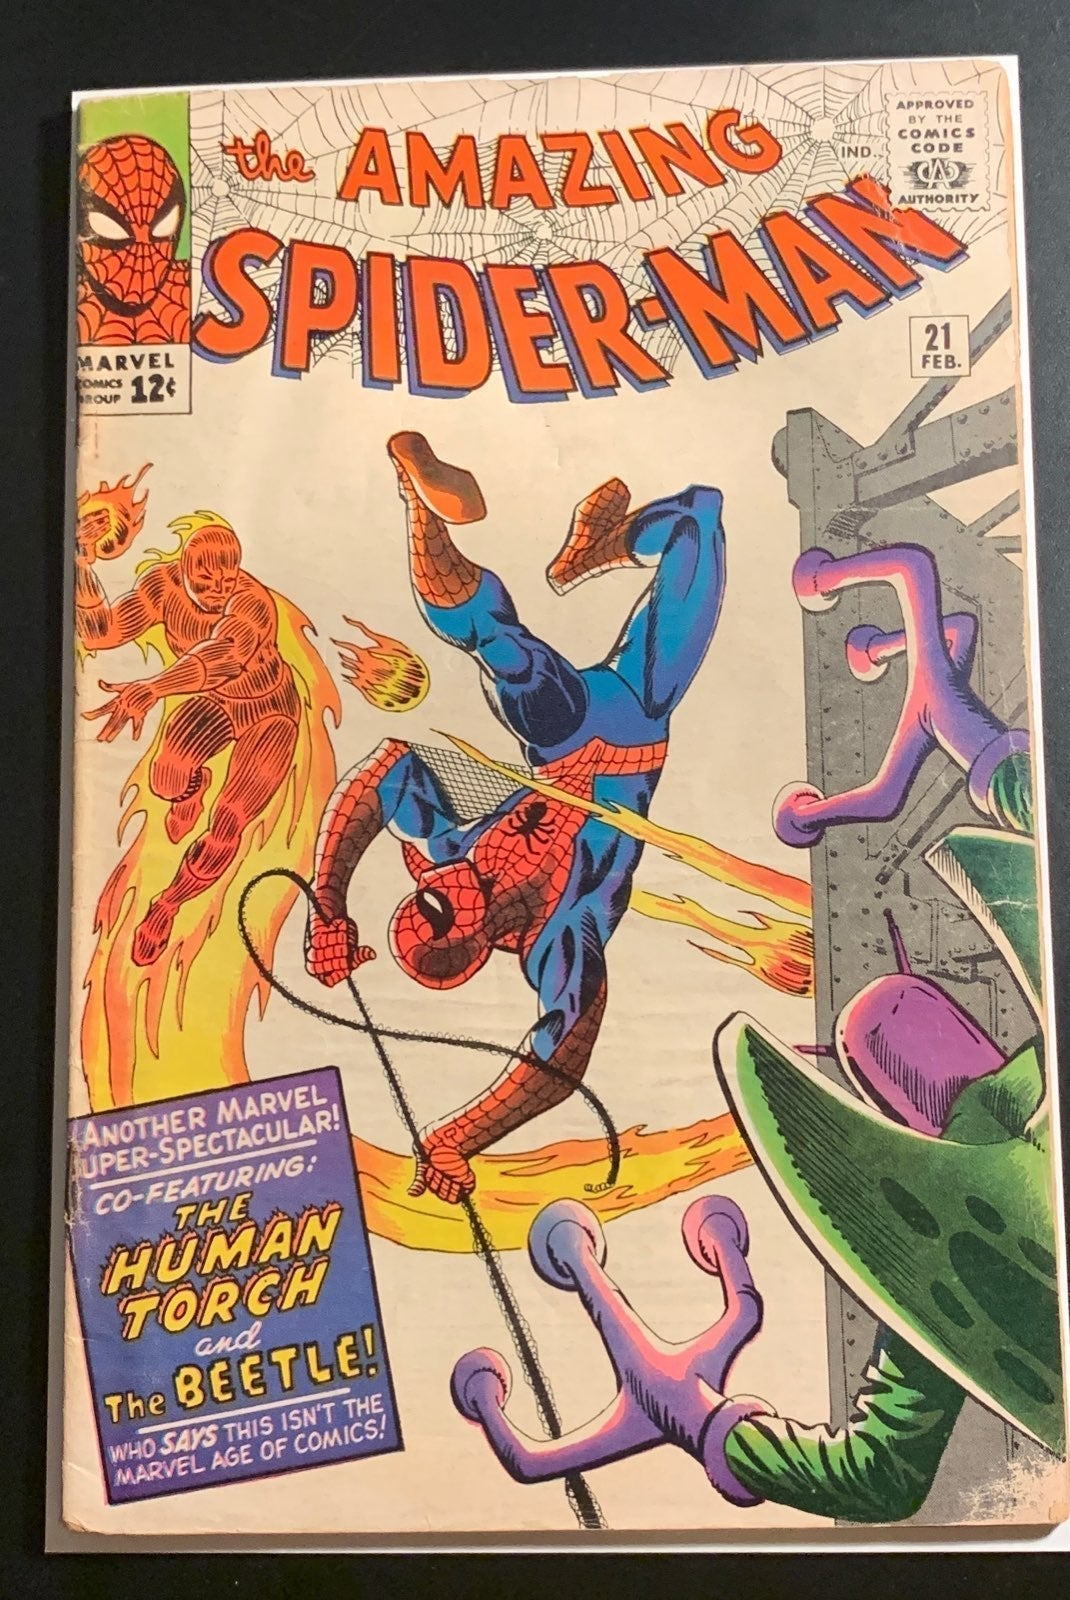 The Amazing Spider-Man Issue 21